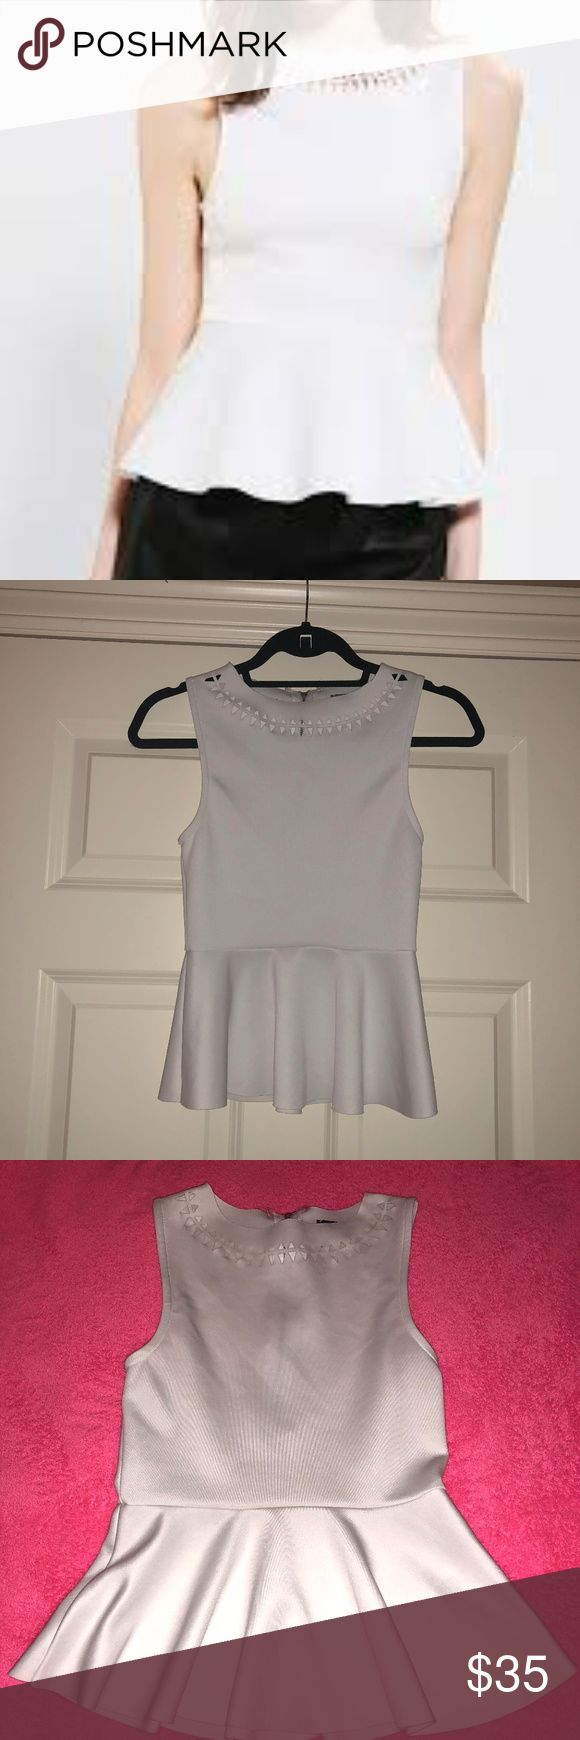 White Peplum Top with cutout neck design Zip up back white peplum tank top with cutout neck design. Worn once Sparkle & Fade Tops Tank Tops